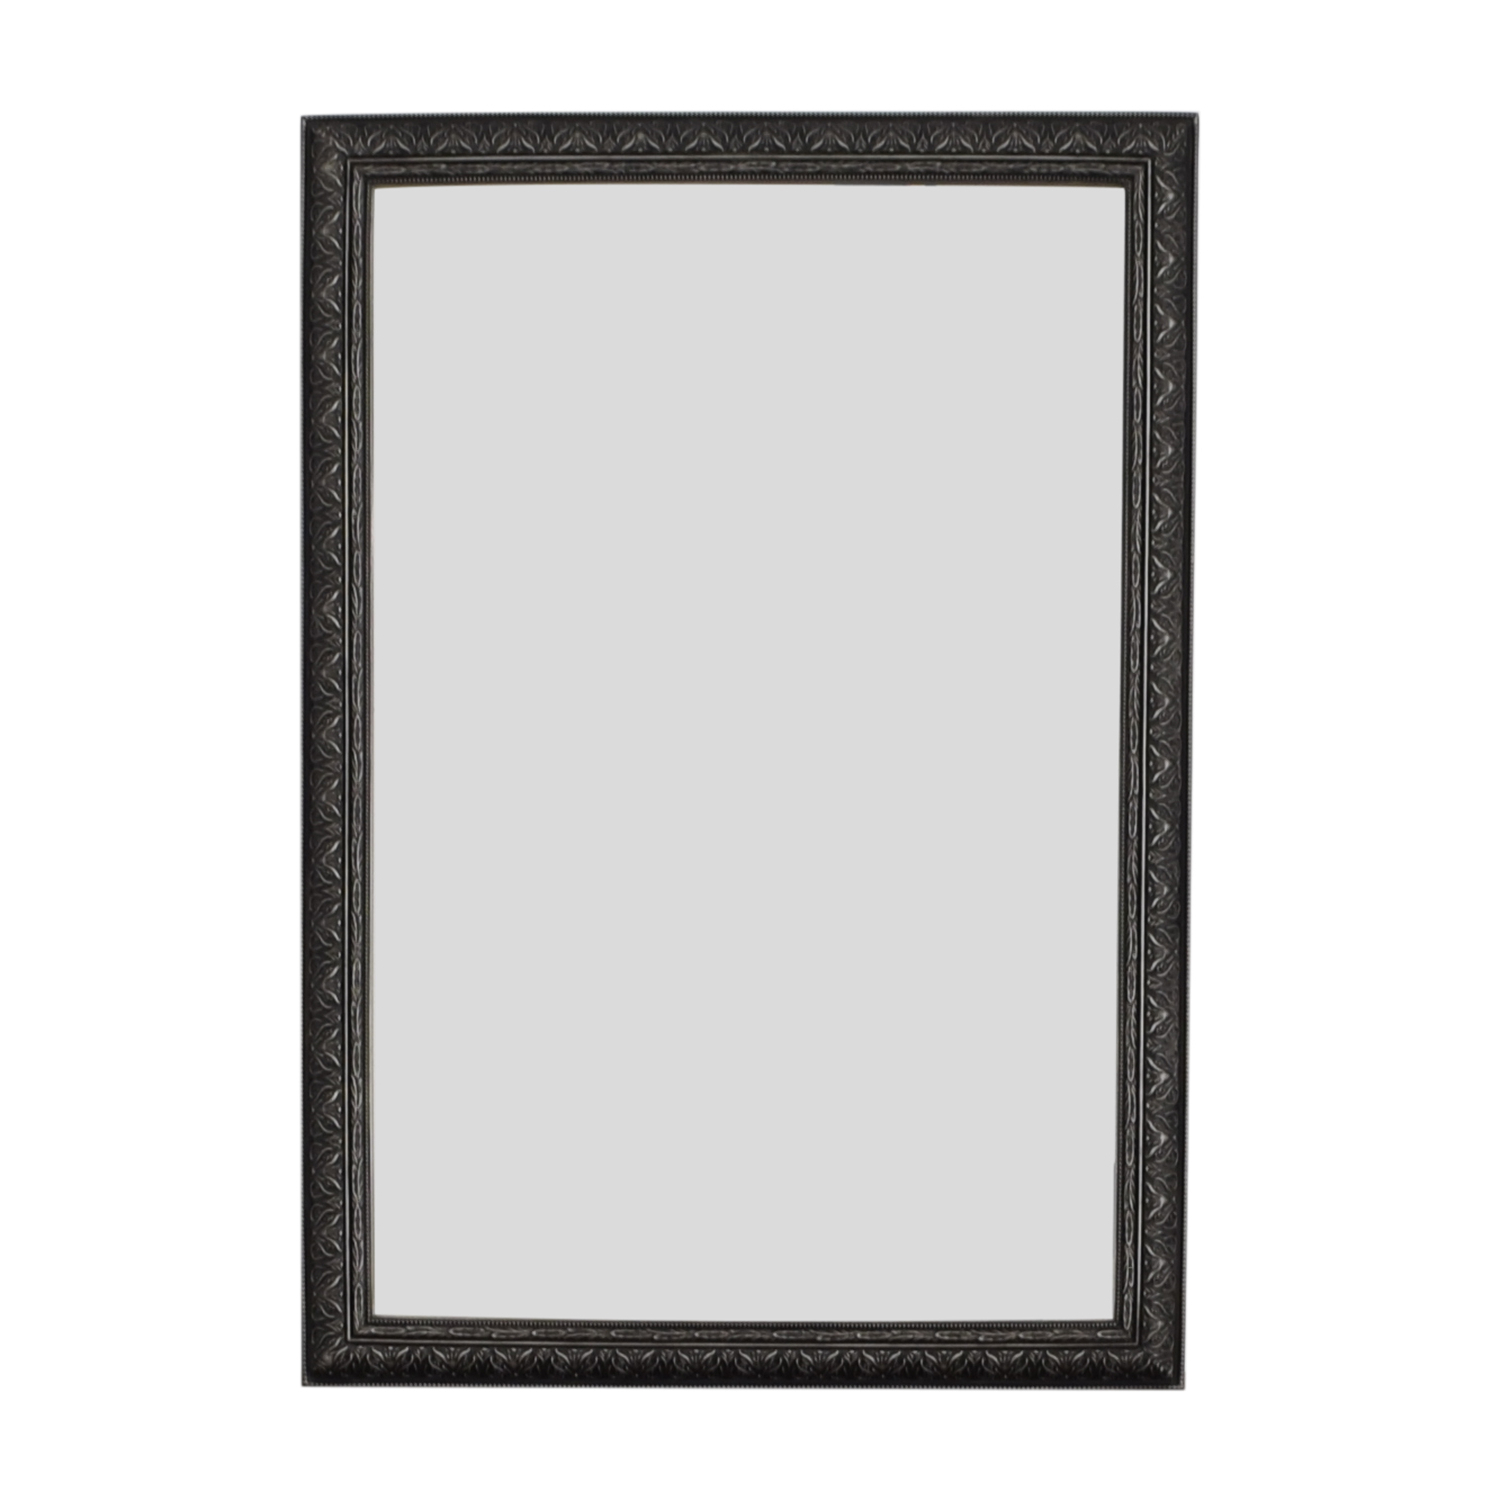 [%66% Off – Pottery Barn Pottery Barn Framed Wall Mirror / Decor In Most Popular Pottery Barn Wall Mirrors|pottery Barn Wall Mirrors Throughout Most Popular 66% Off – Pottery Barn Pottery Barn Framed Wall Mirror / Decor|well Known Pottery Barn Wall Mirrors For 66% Off – Pottery Barn Pottery Barn Framed Wall Mirror / Decor|well Known 66% Off – Pottery Barn Pottery Barn Framed Wall Mirror / Decor With Pottery Barn Wall Mirrors%] (View 4 of 20)